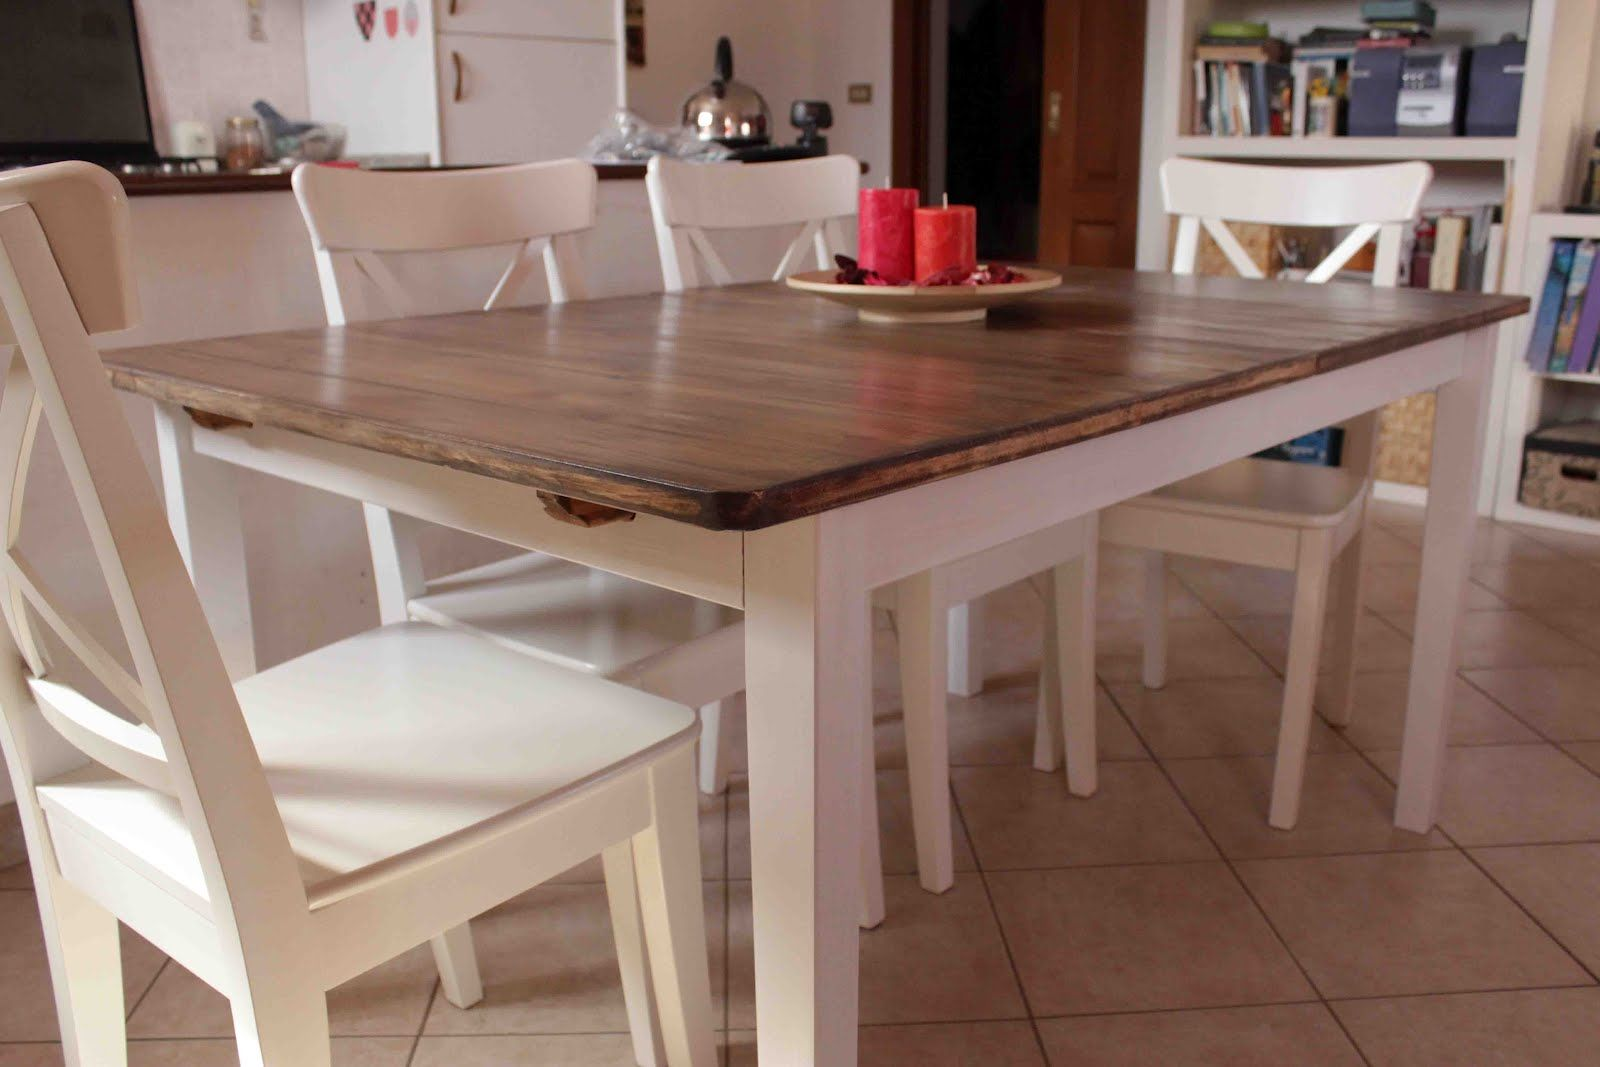 make your own country kitchen table with a cheap ikea table. this